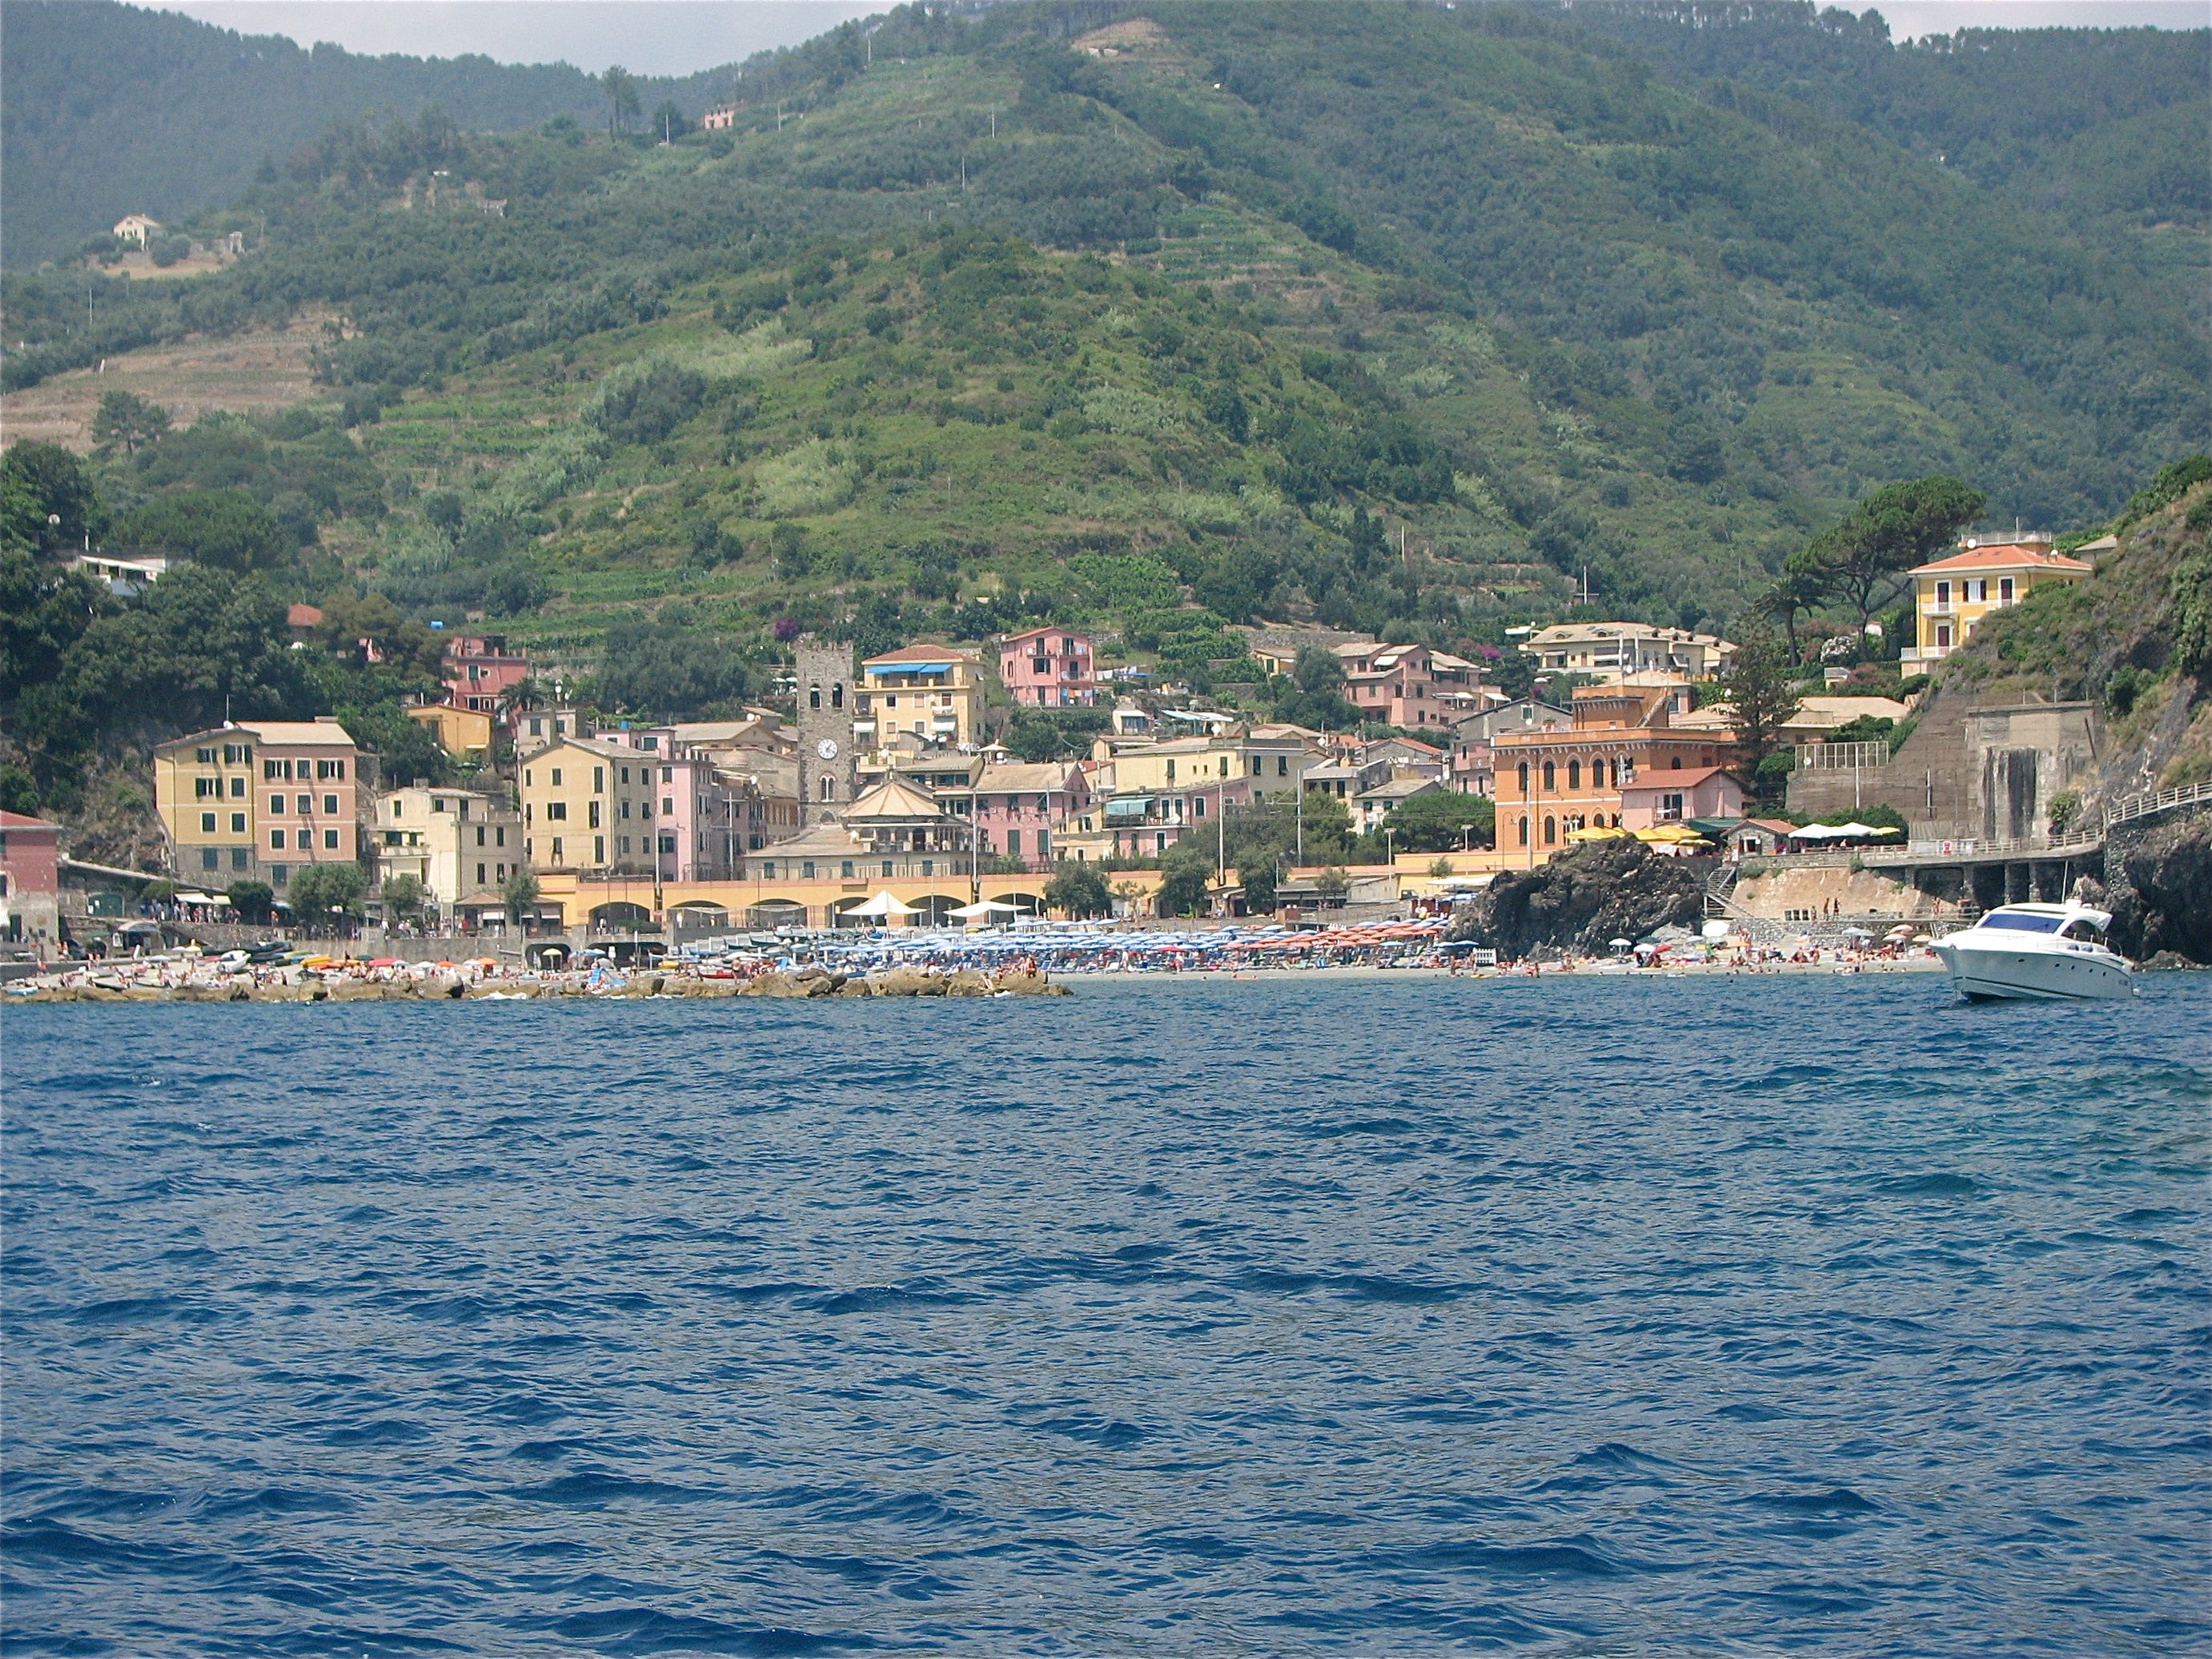 Cinque terre italy part of or amazing 10 year anniversary trip! a